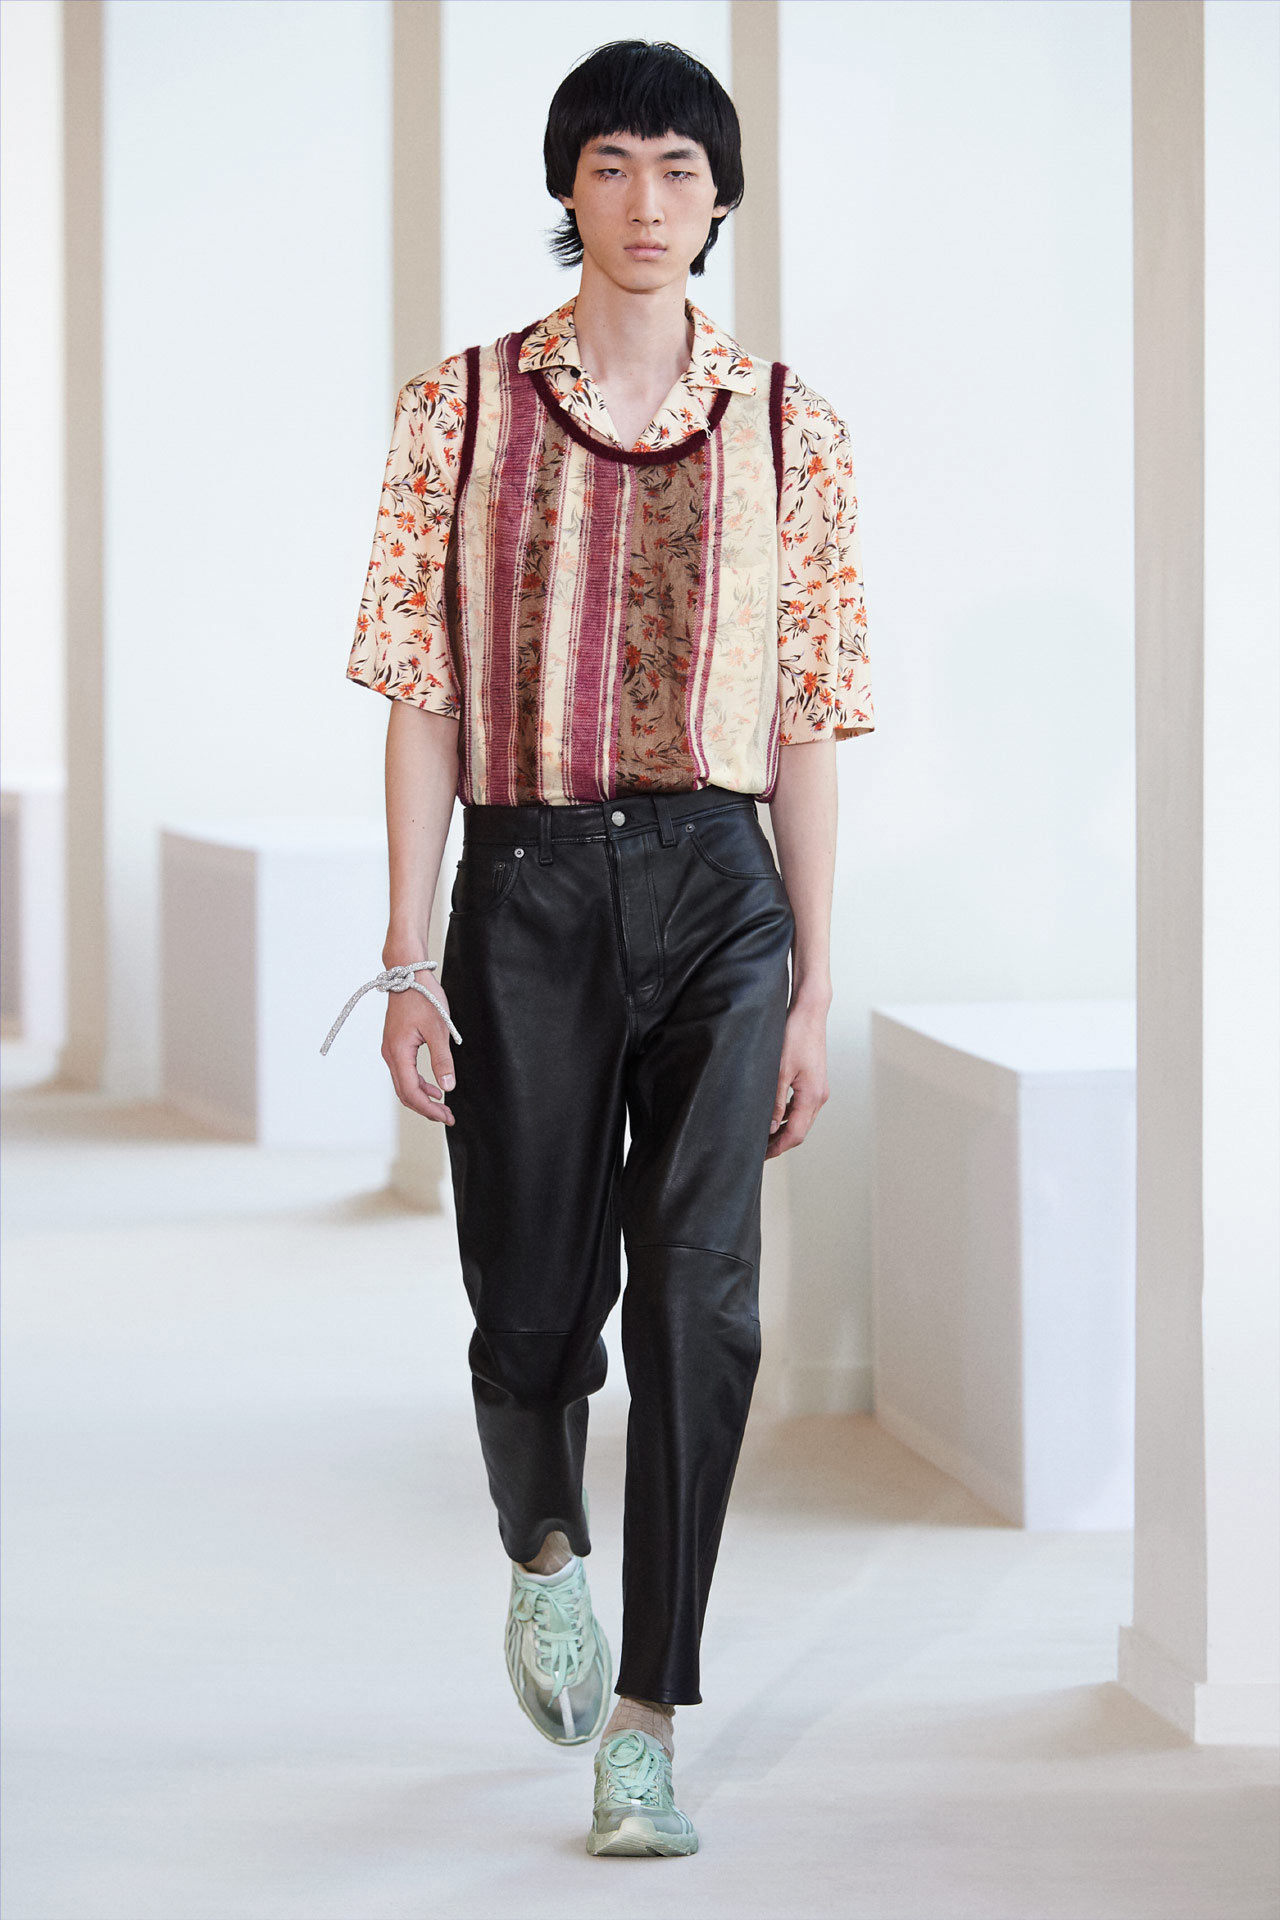 Look Spring/Summer, image 26